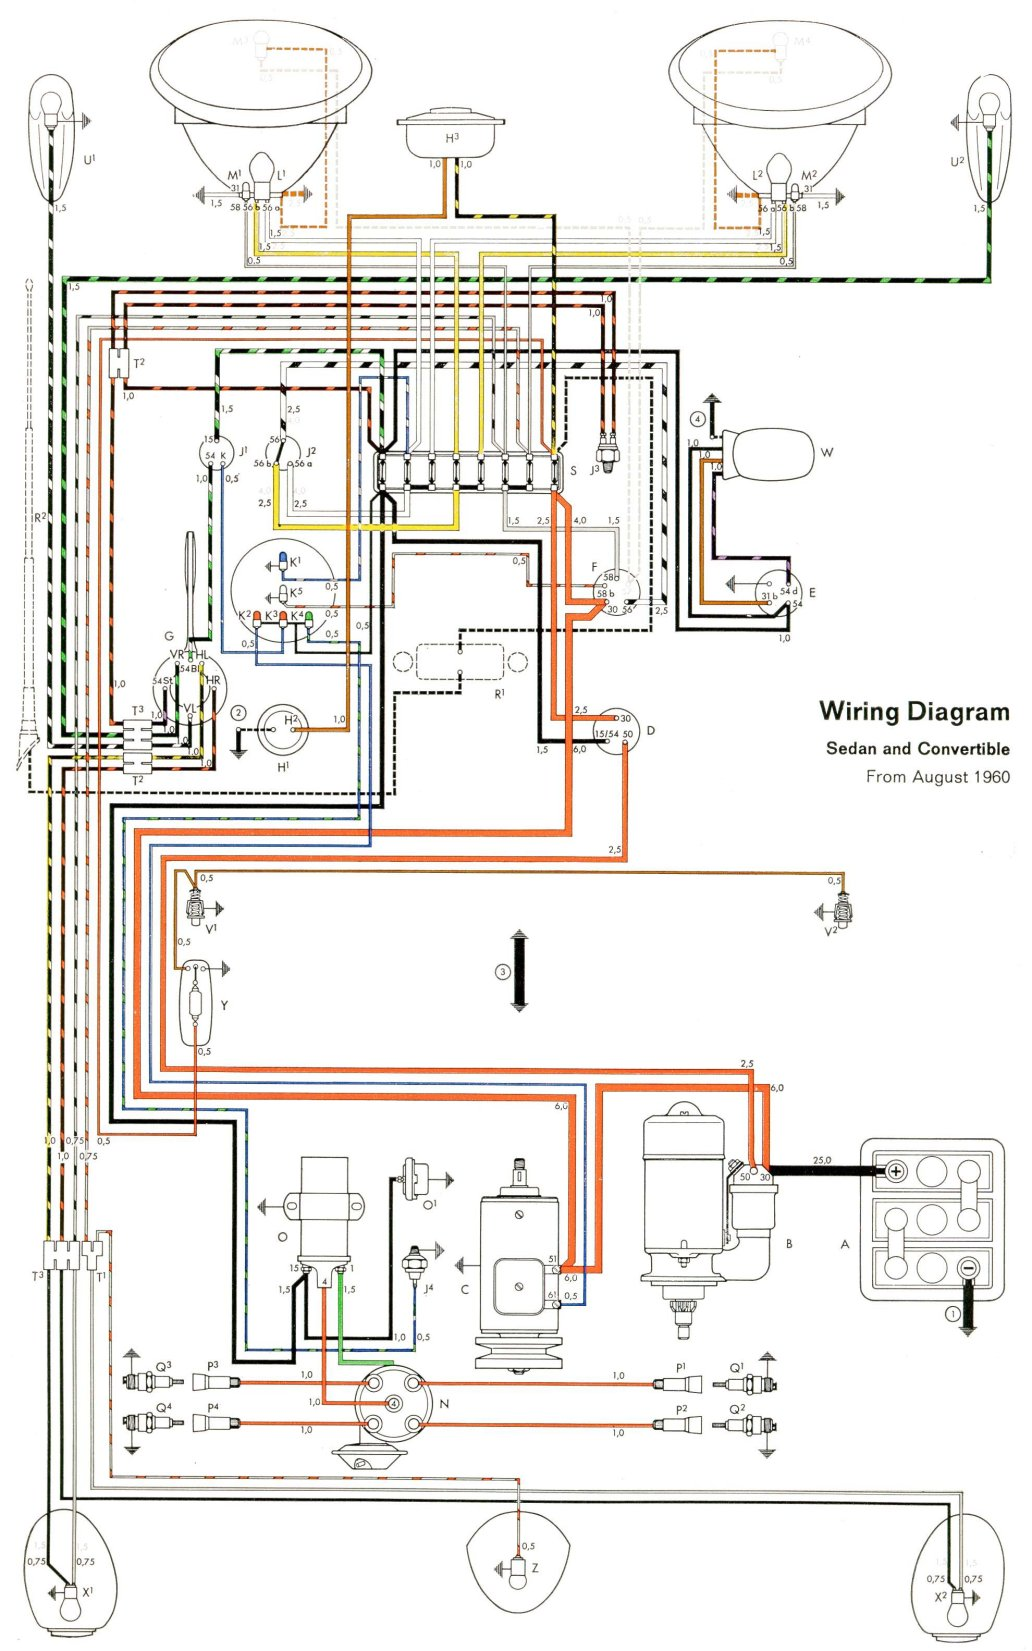 1966 Beetle Wiring Diagram Starting Know About 1967 Vw Simple 1974 Volkswagen Rh David Huggett Co Uk